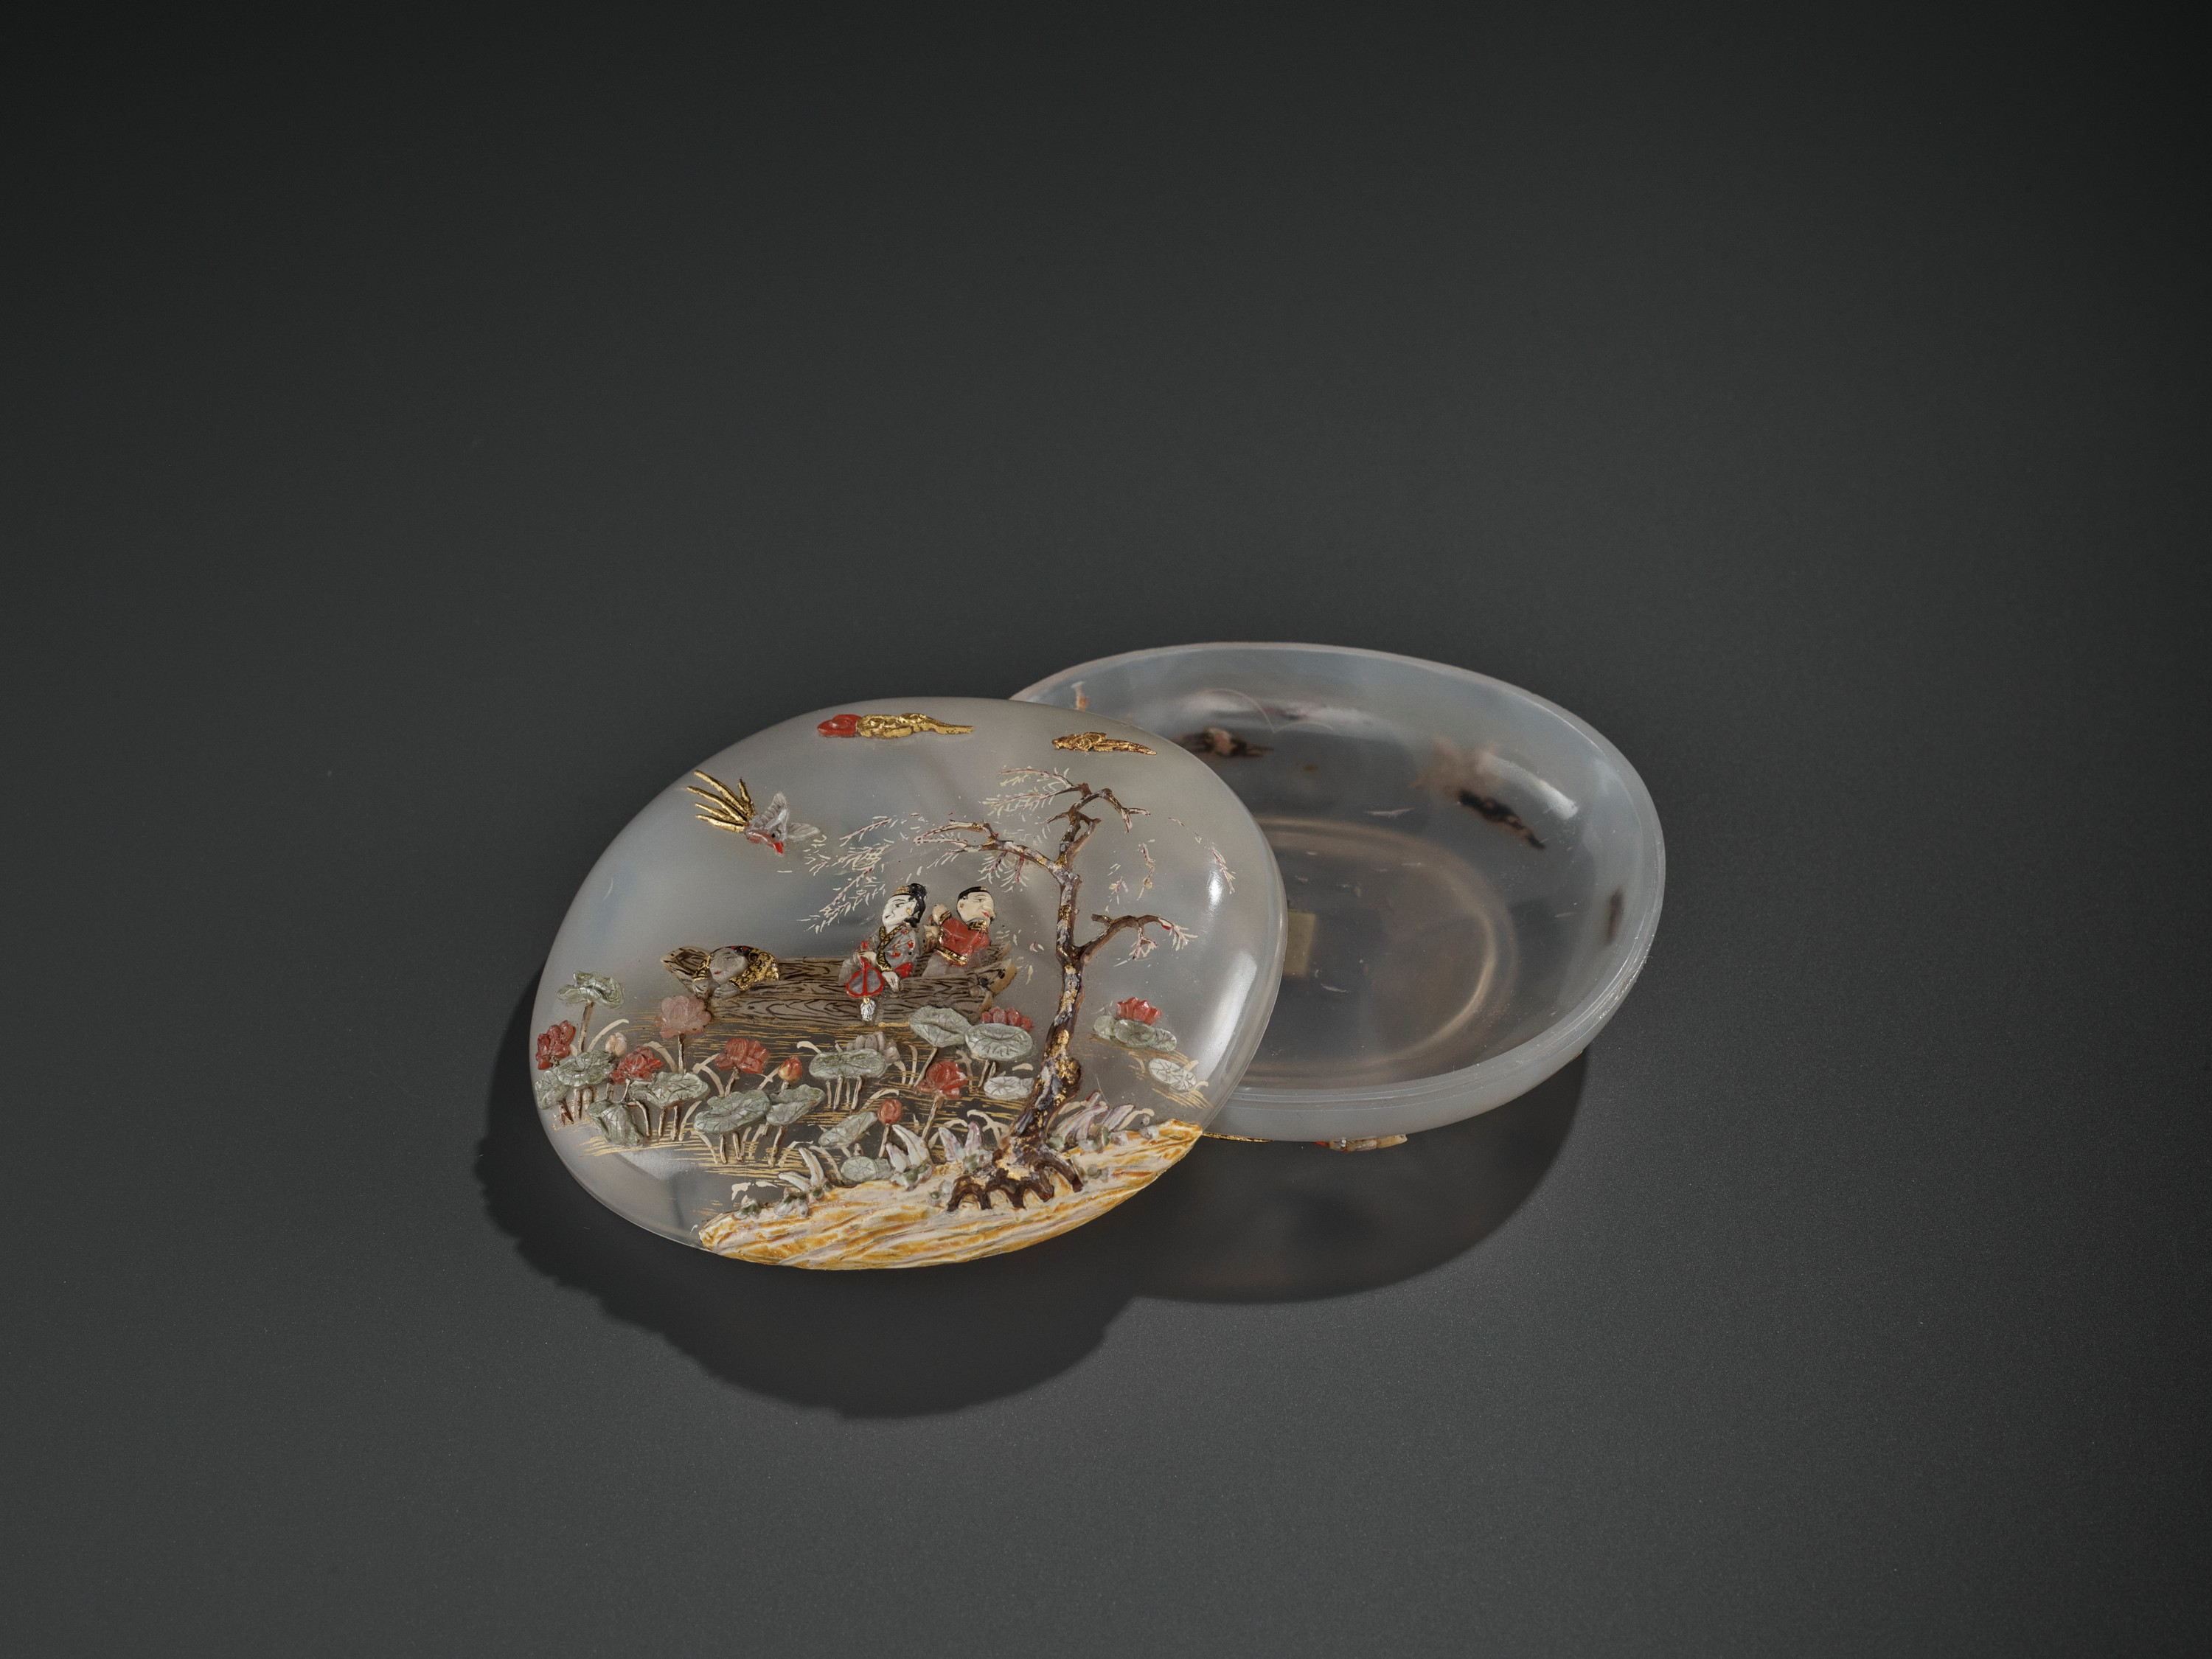 AN EMBELLISHED 'PICKING LOTUS' AGATE BOX, QING DYNASTY